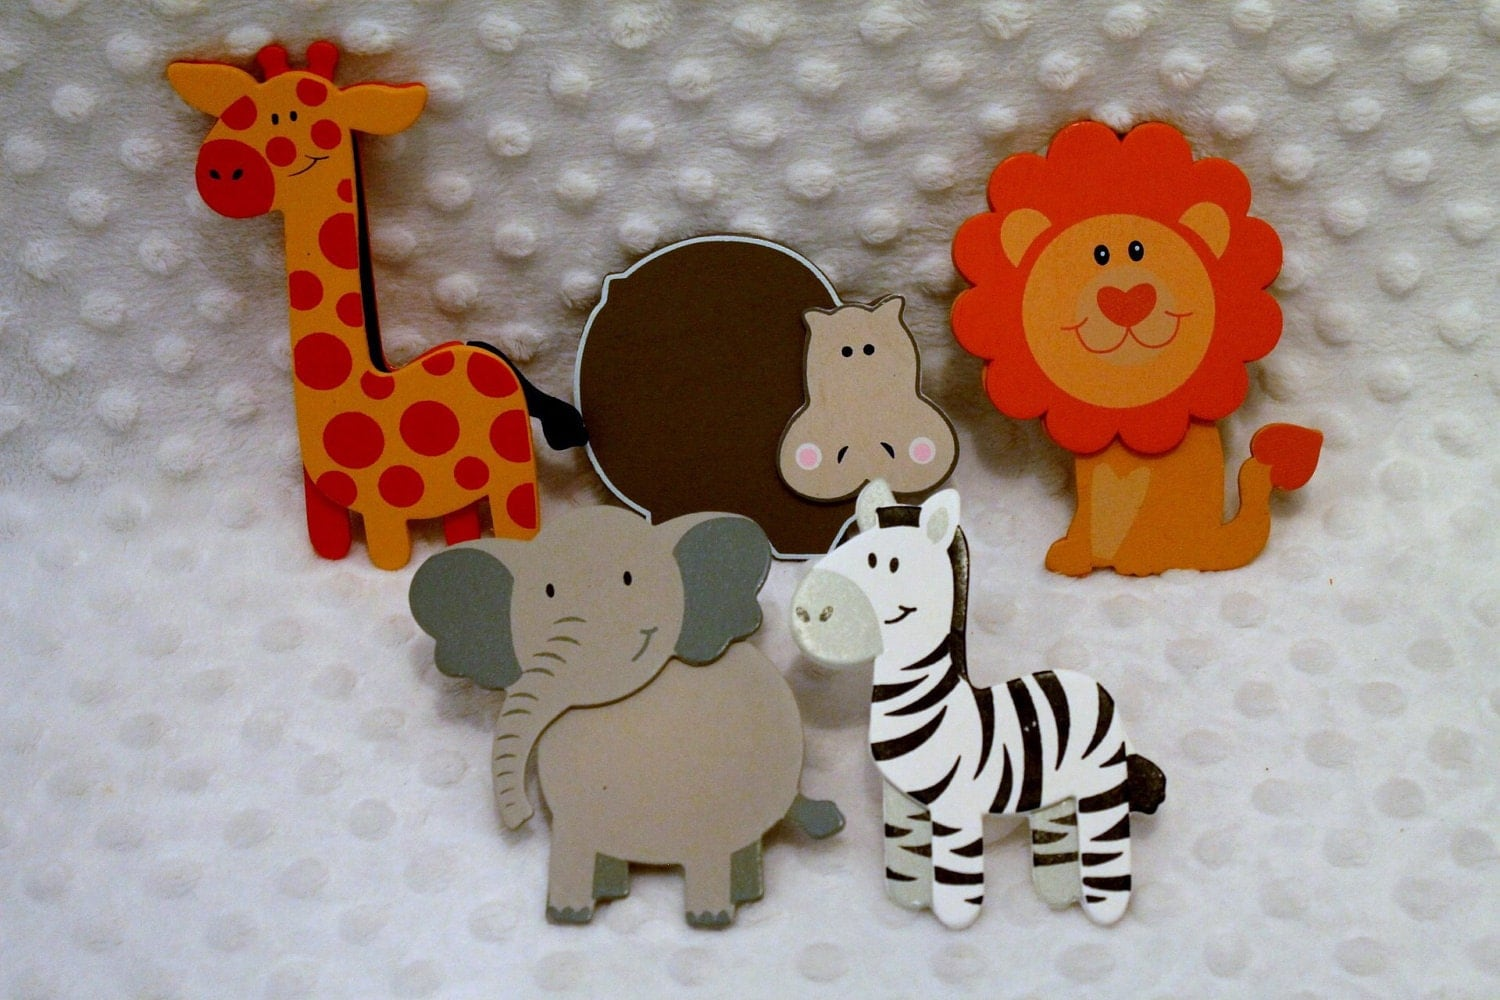 Popular objects for decorative outlet on Etsy - Decorative Outlet Socket Covers Jungle Zoo Animals Baby And Kids